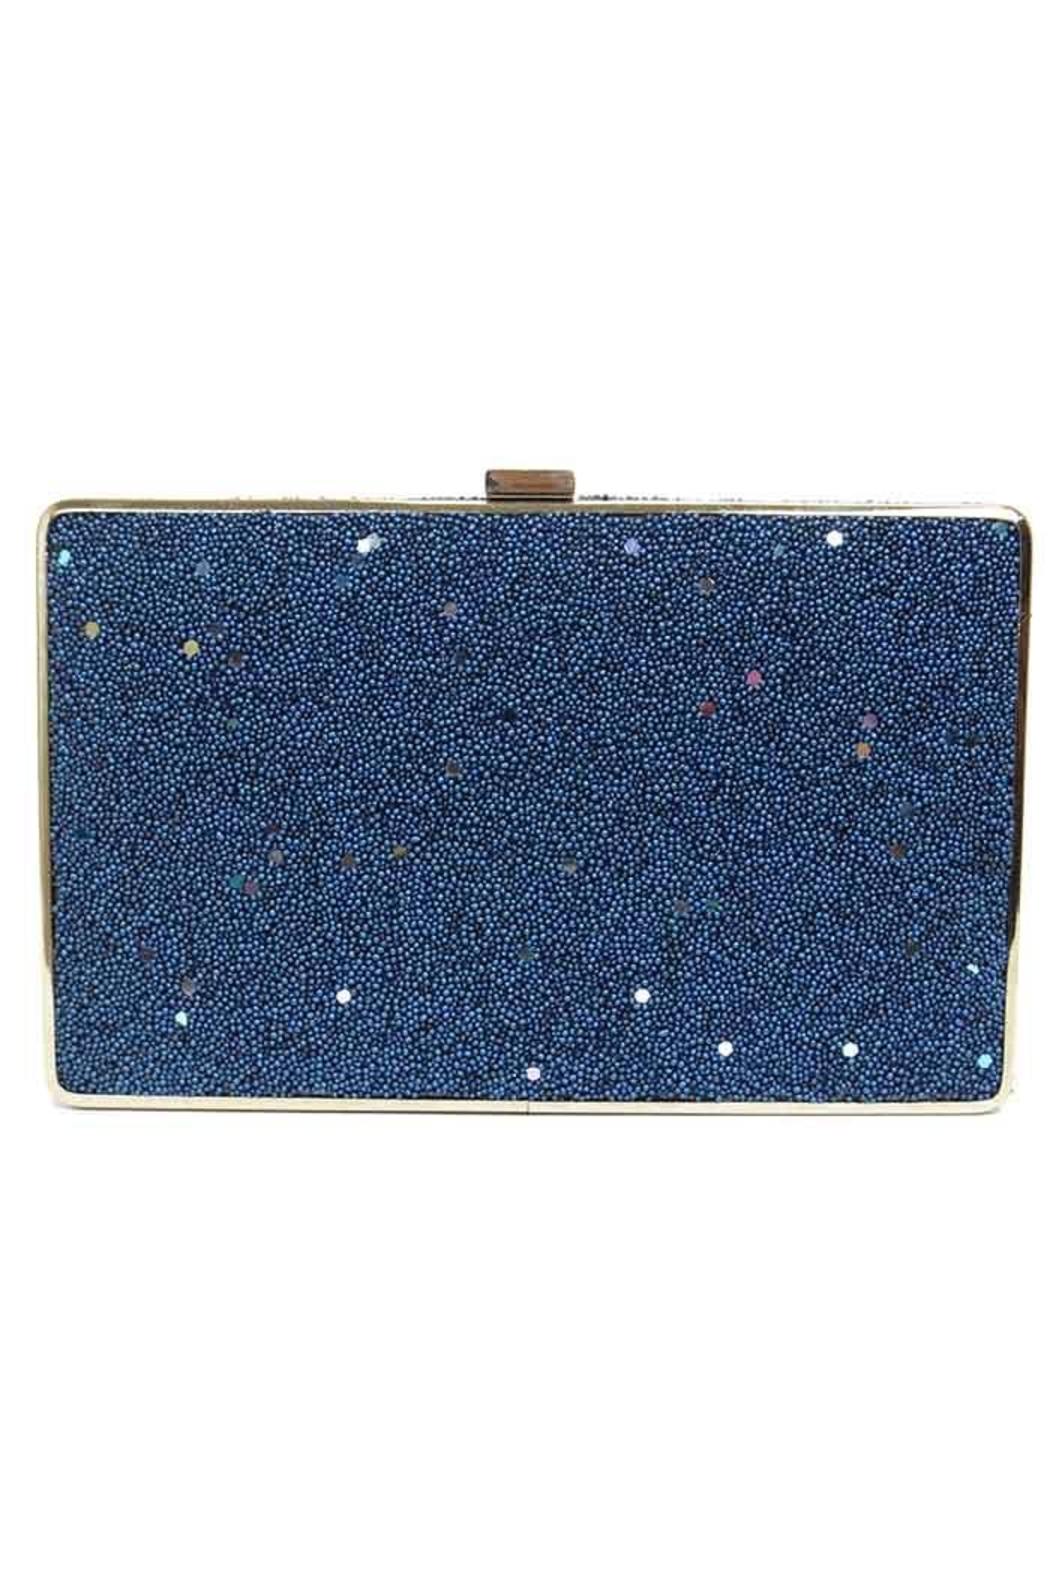 Sondra Roberts Seed Bead Clutch - Front Cropped Image